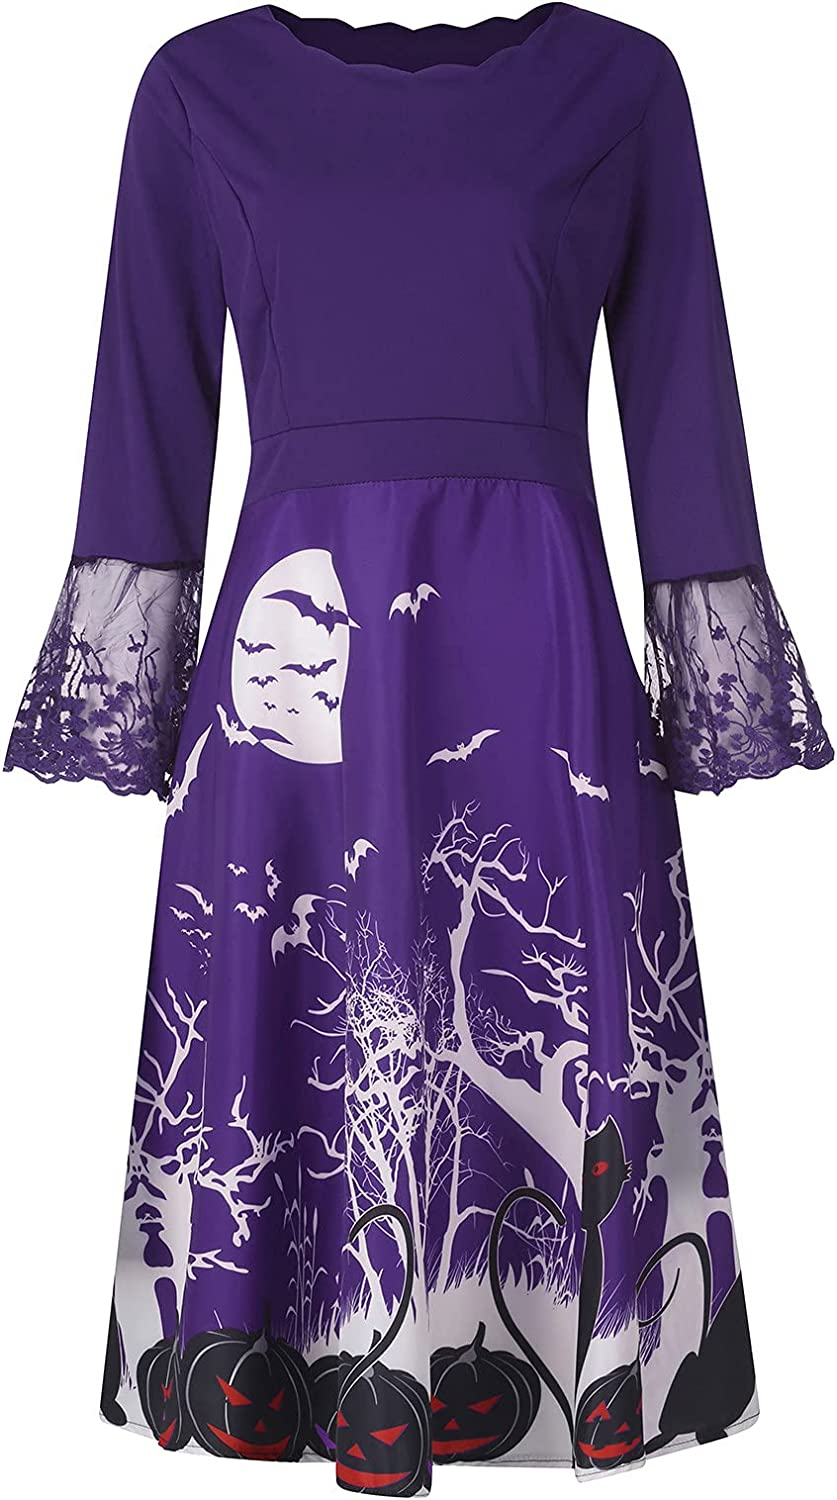 Shaloly Halloween Vintage Evening Party Dress for Women, O-Neck Long Sleeve Printed Prom Dress